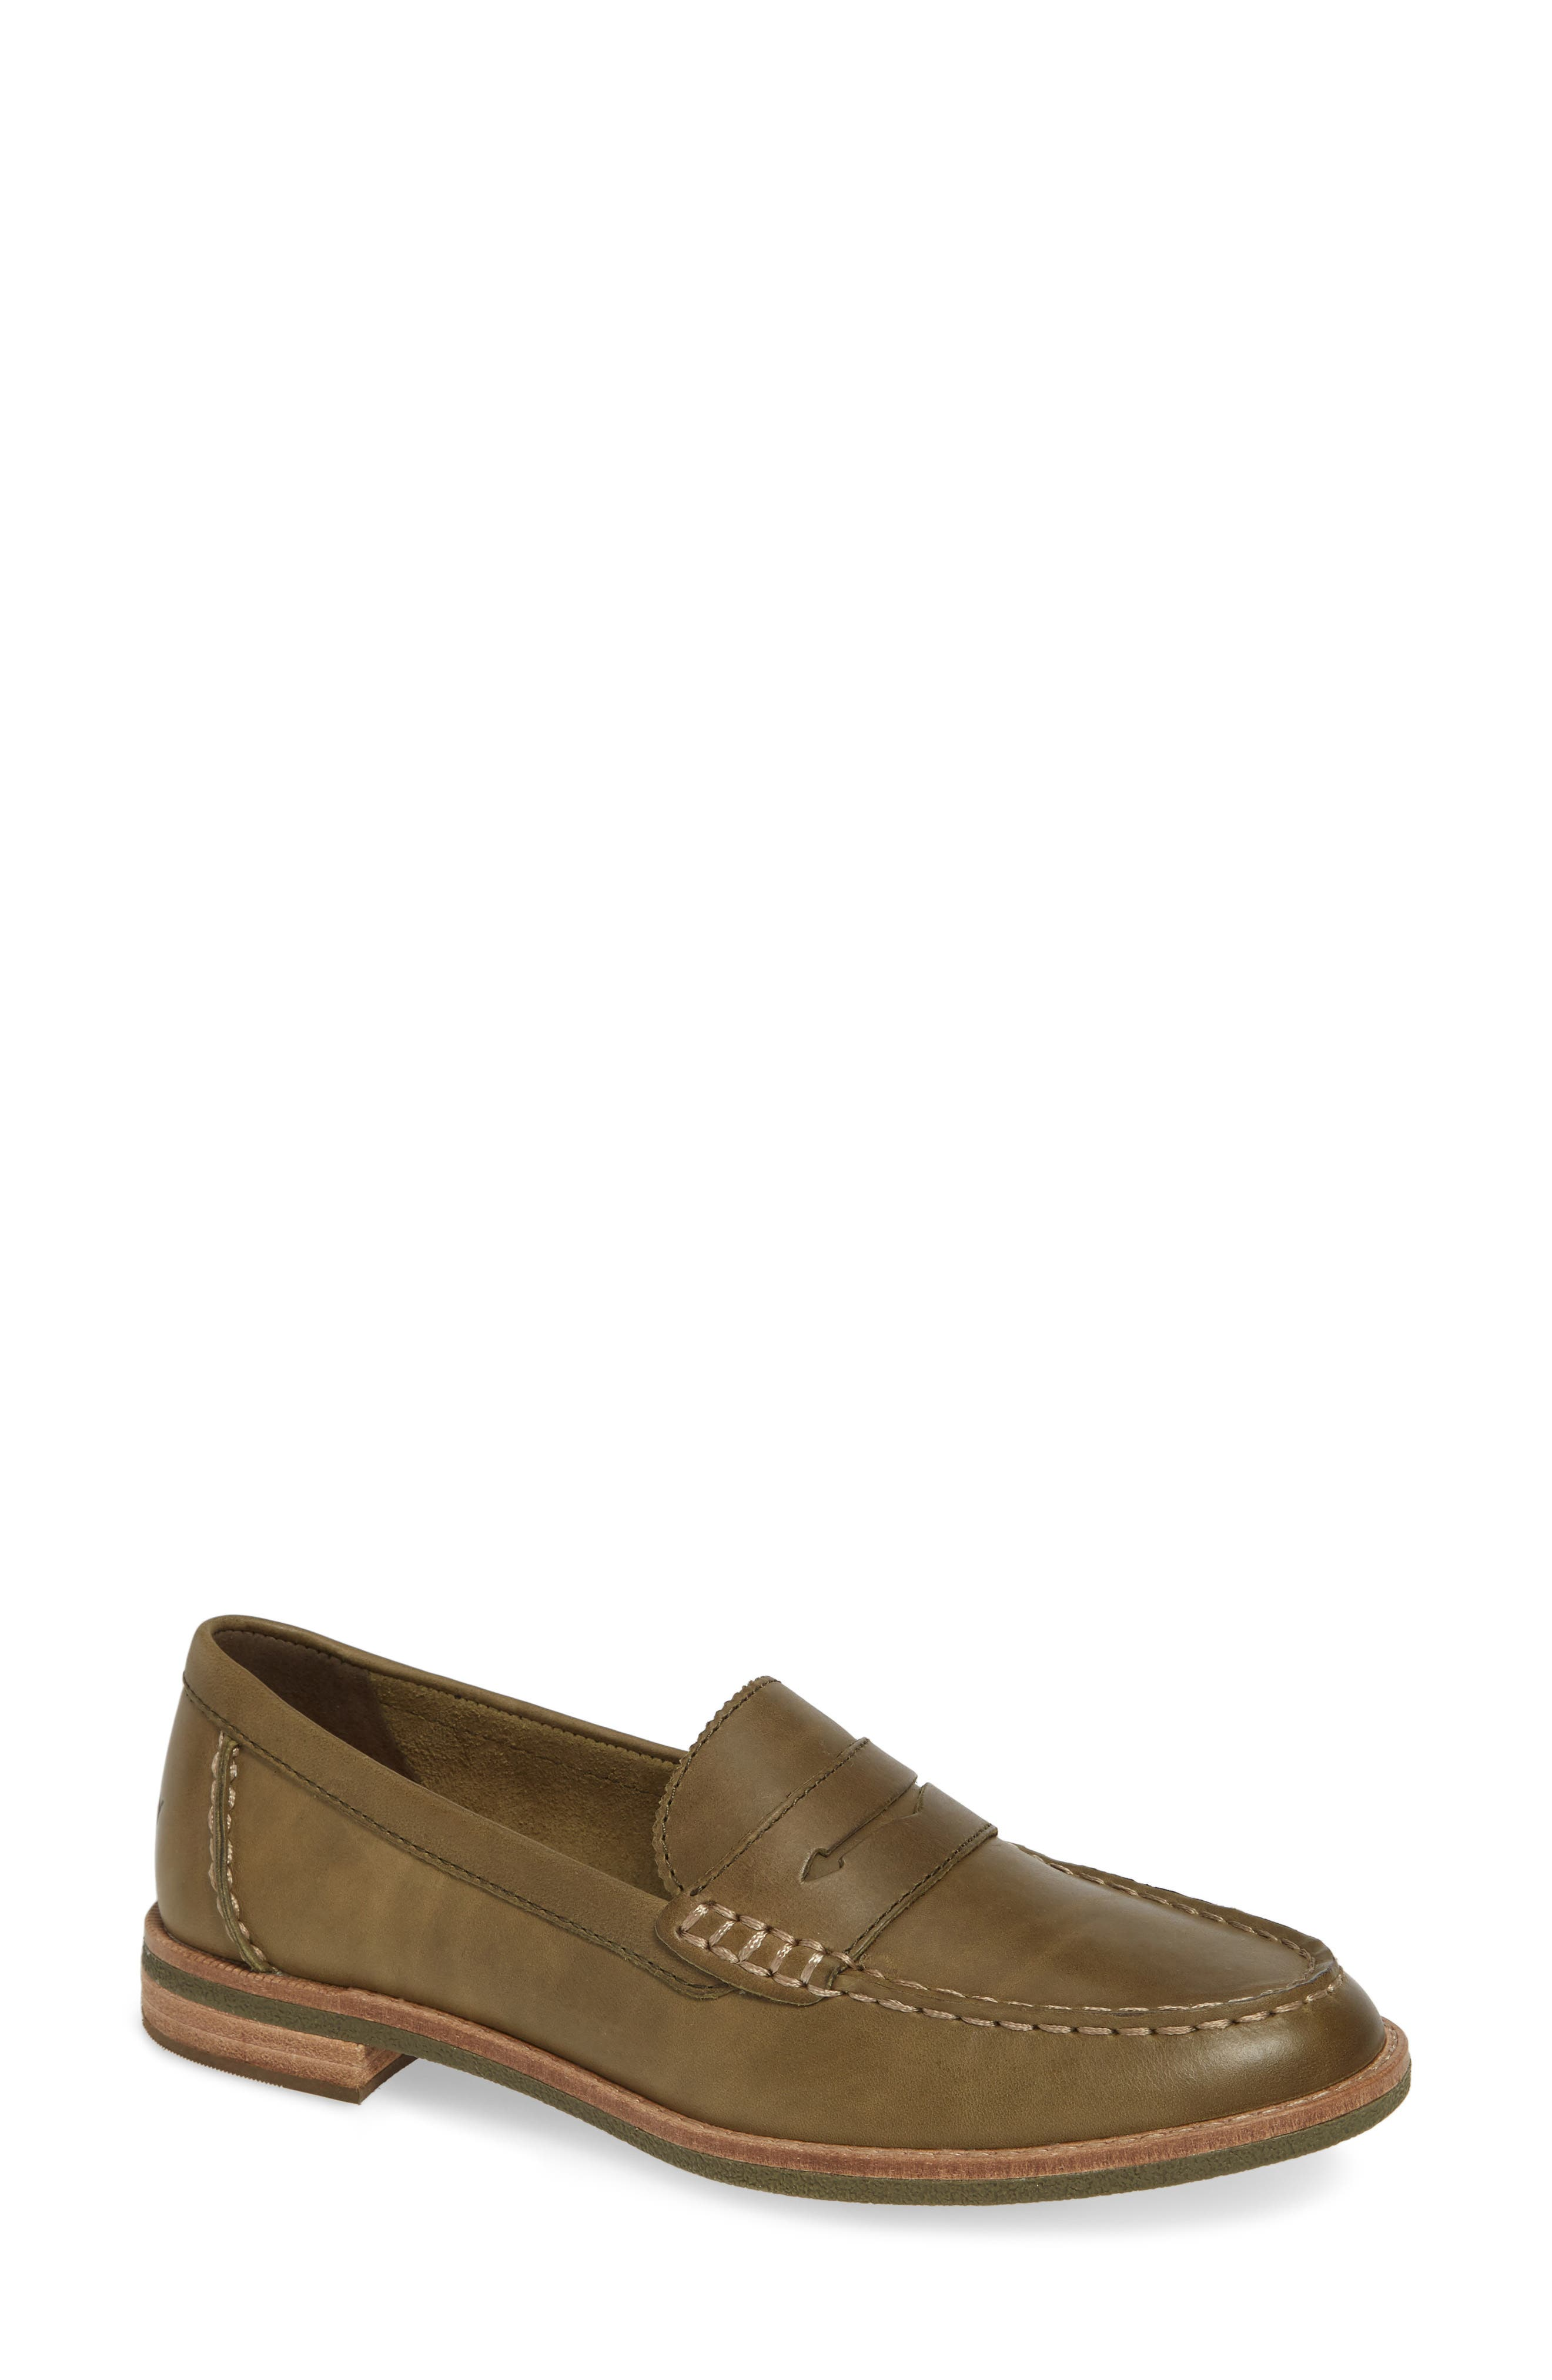 Seaport Penny Loafer,                             Main thumbnail 1, color,                             OLIVE LEATHER